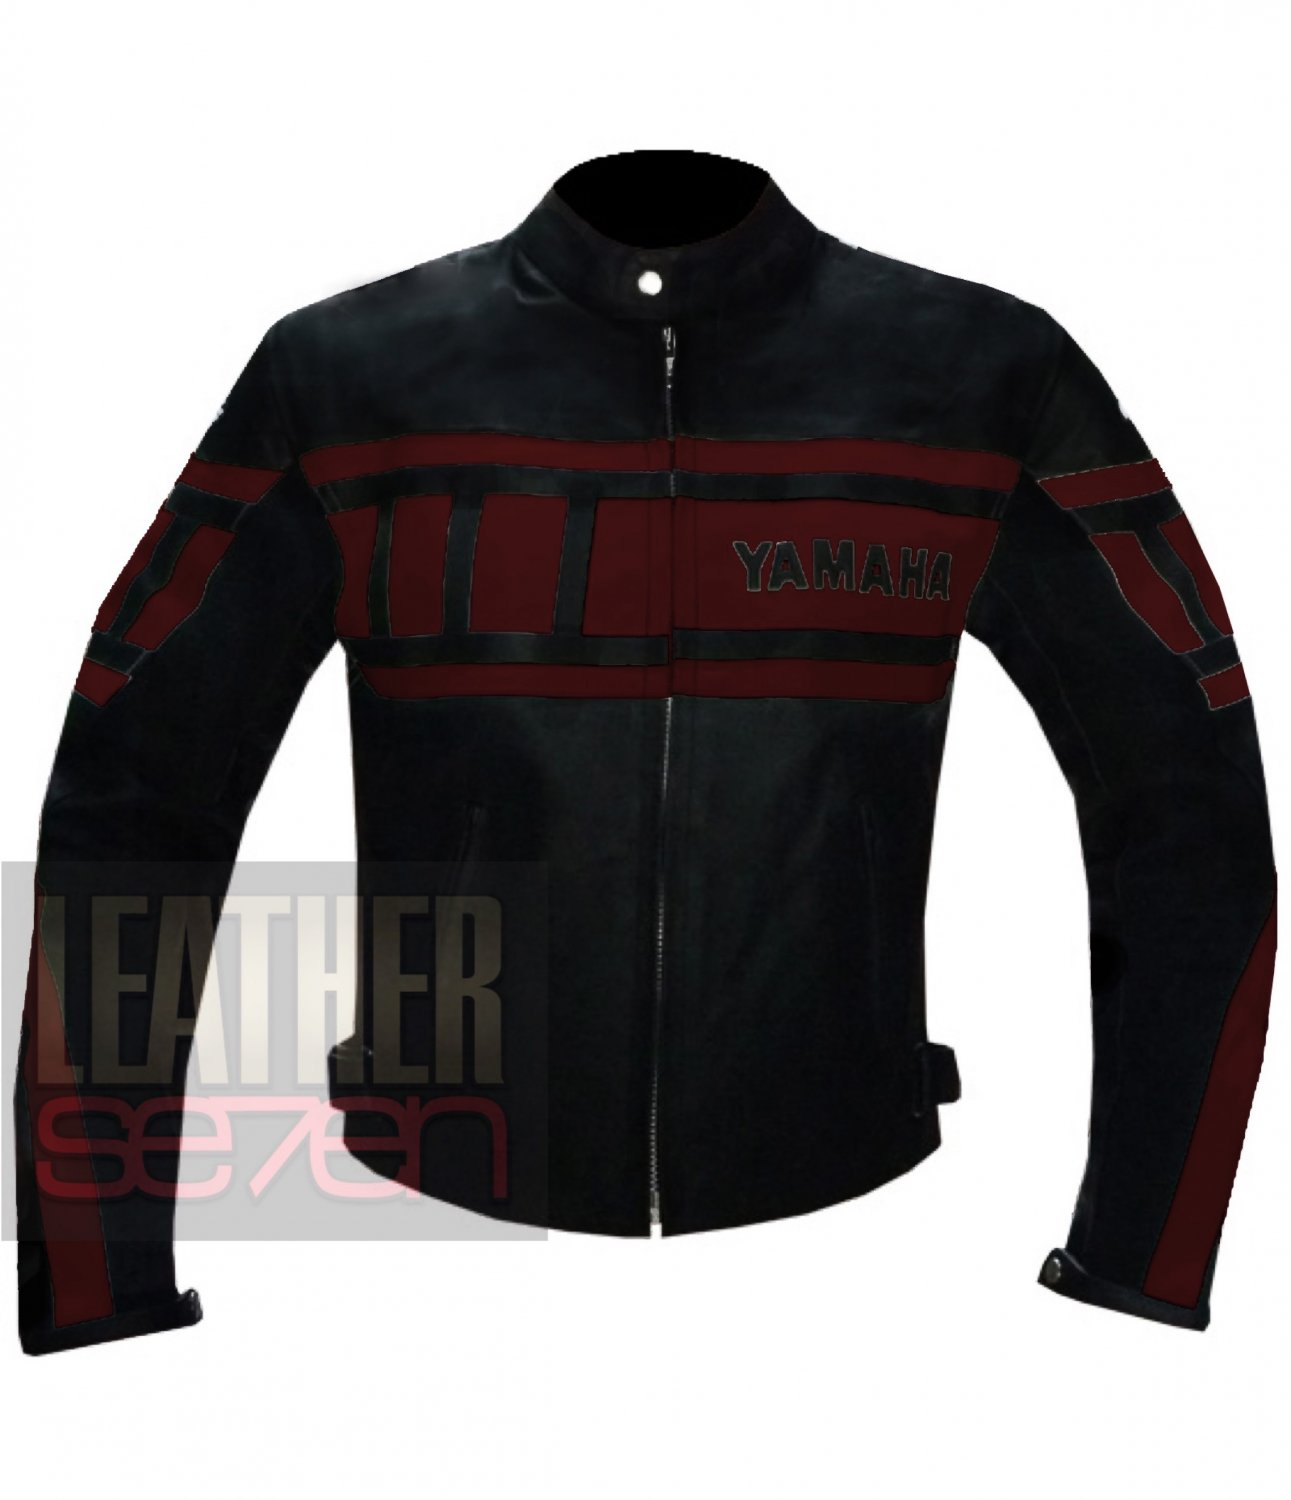 Best Quality Pure Cowhide Racing Leather Jacket .. Yamaha 0120 Red Coat